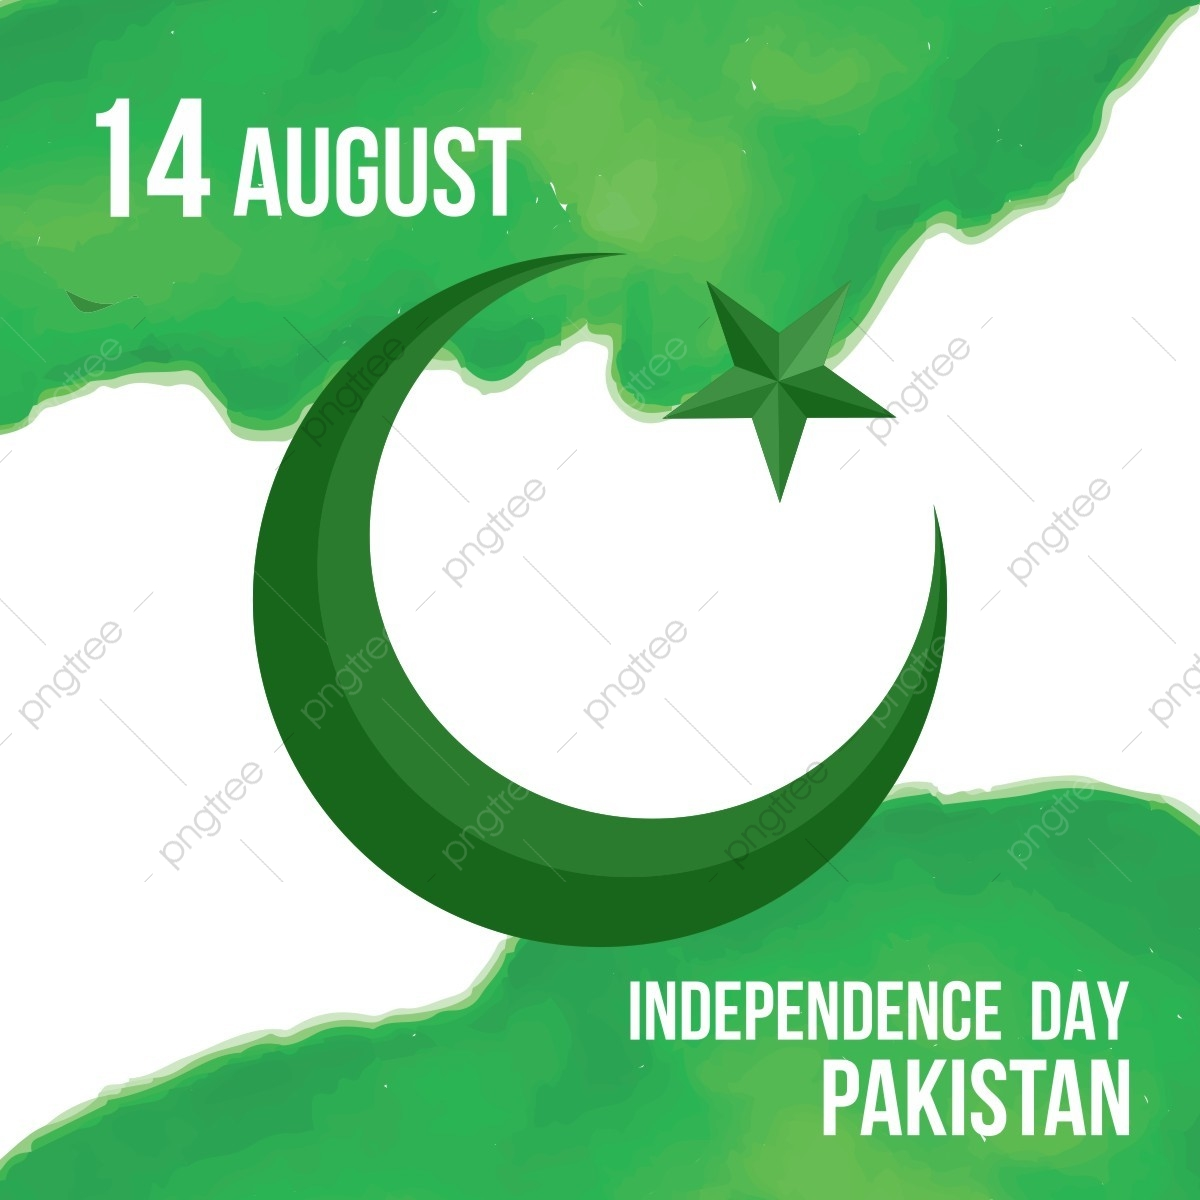 Happy Independence Day 14 August Pakistan Greeting Card Pakistan August 14 Flag Of Pakistan Png And Vector With Transparent Background For Free Download